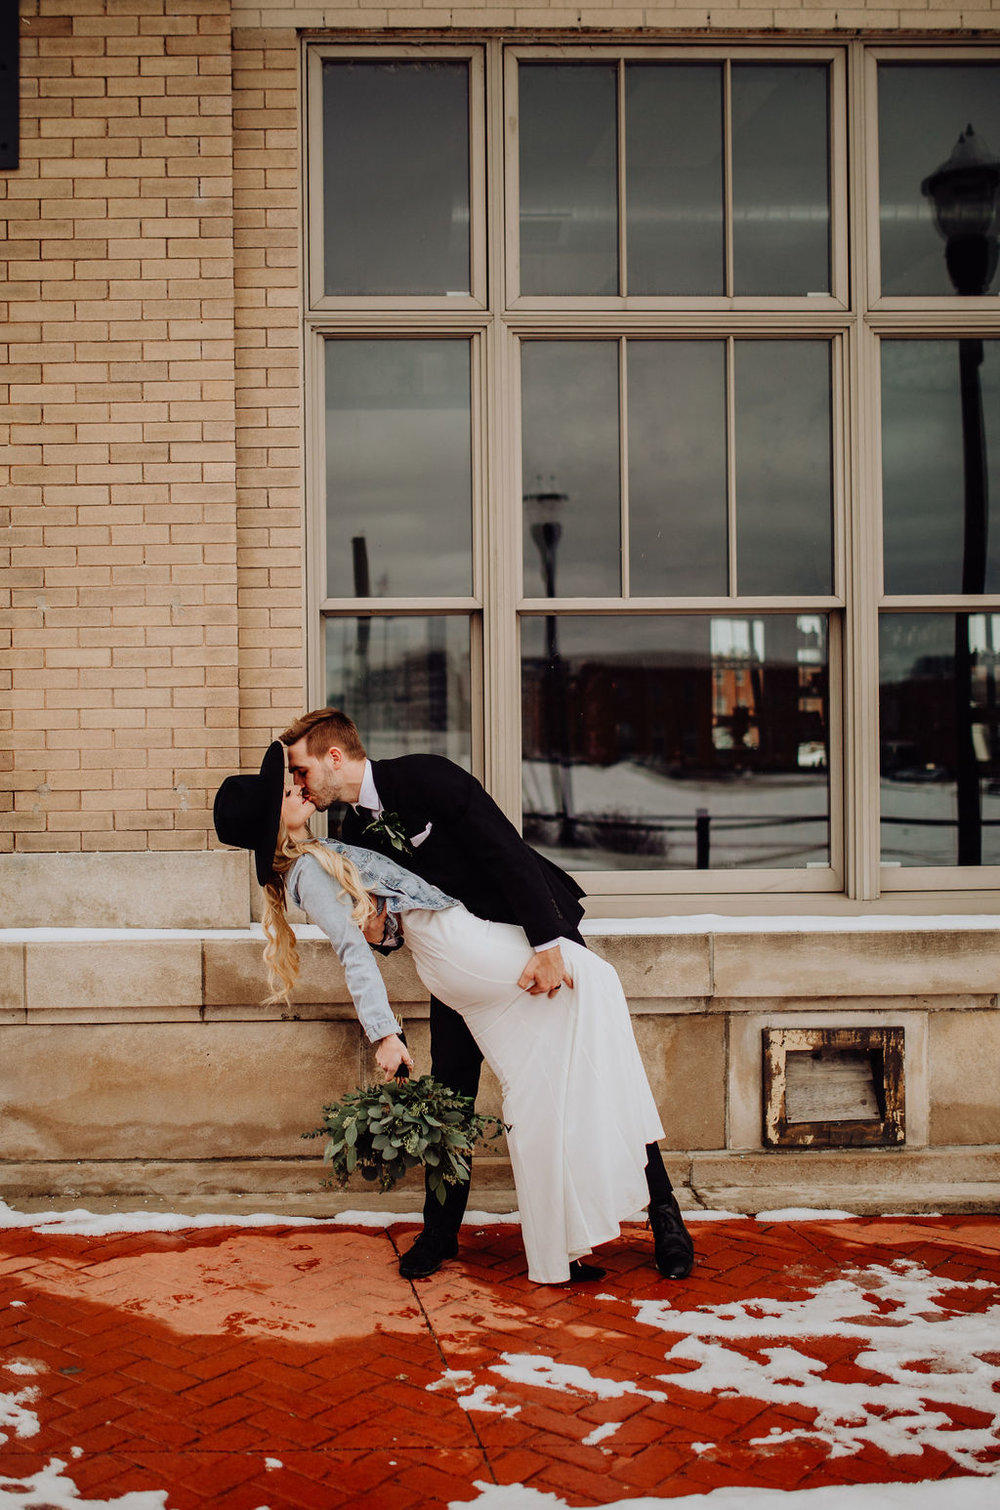 The Real Reason We Got Married 3 Months Before Our Wedding | Modern, Vintage Winter Courthouse Wedding | Miranda Schroeder Blog | www.mirandaschroedercom